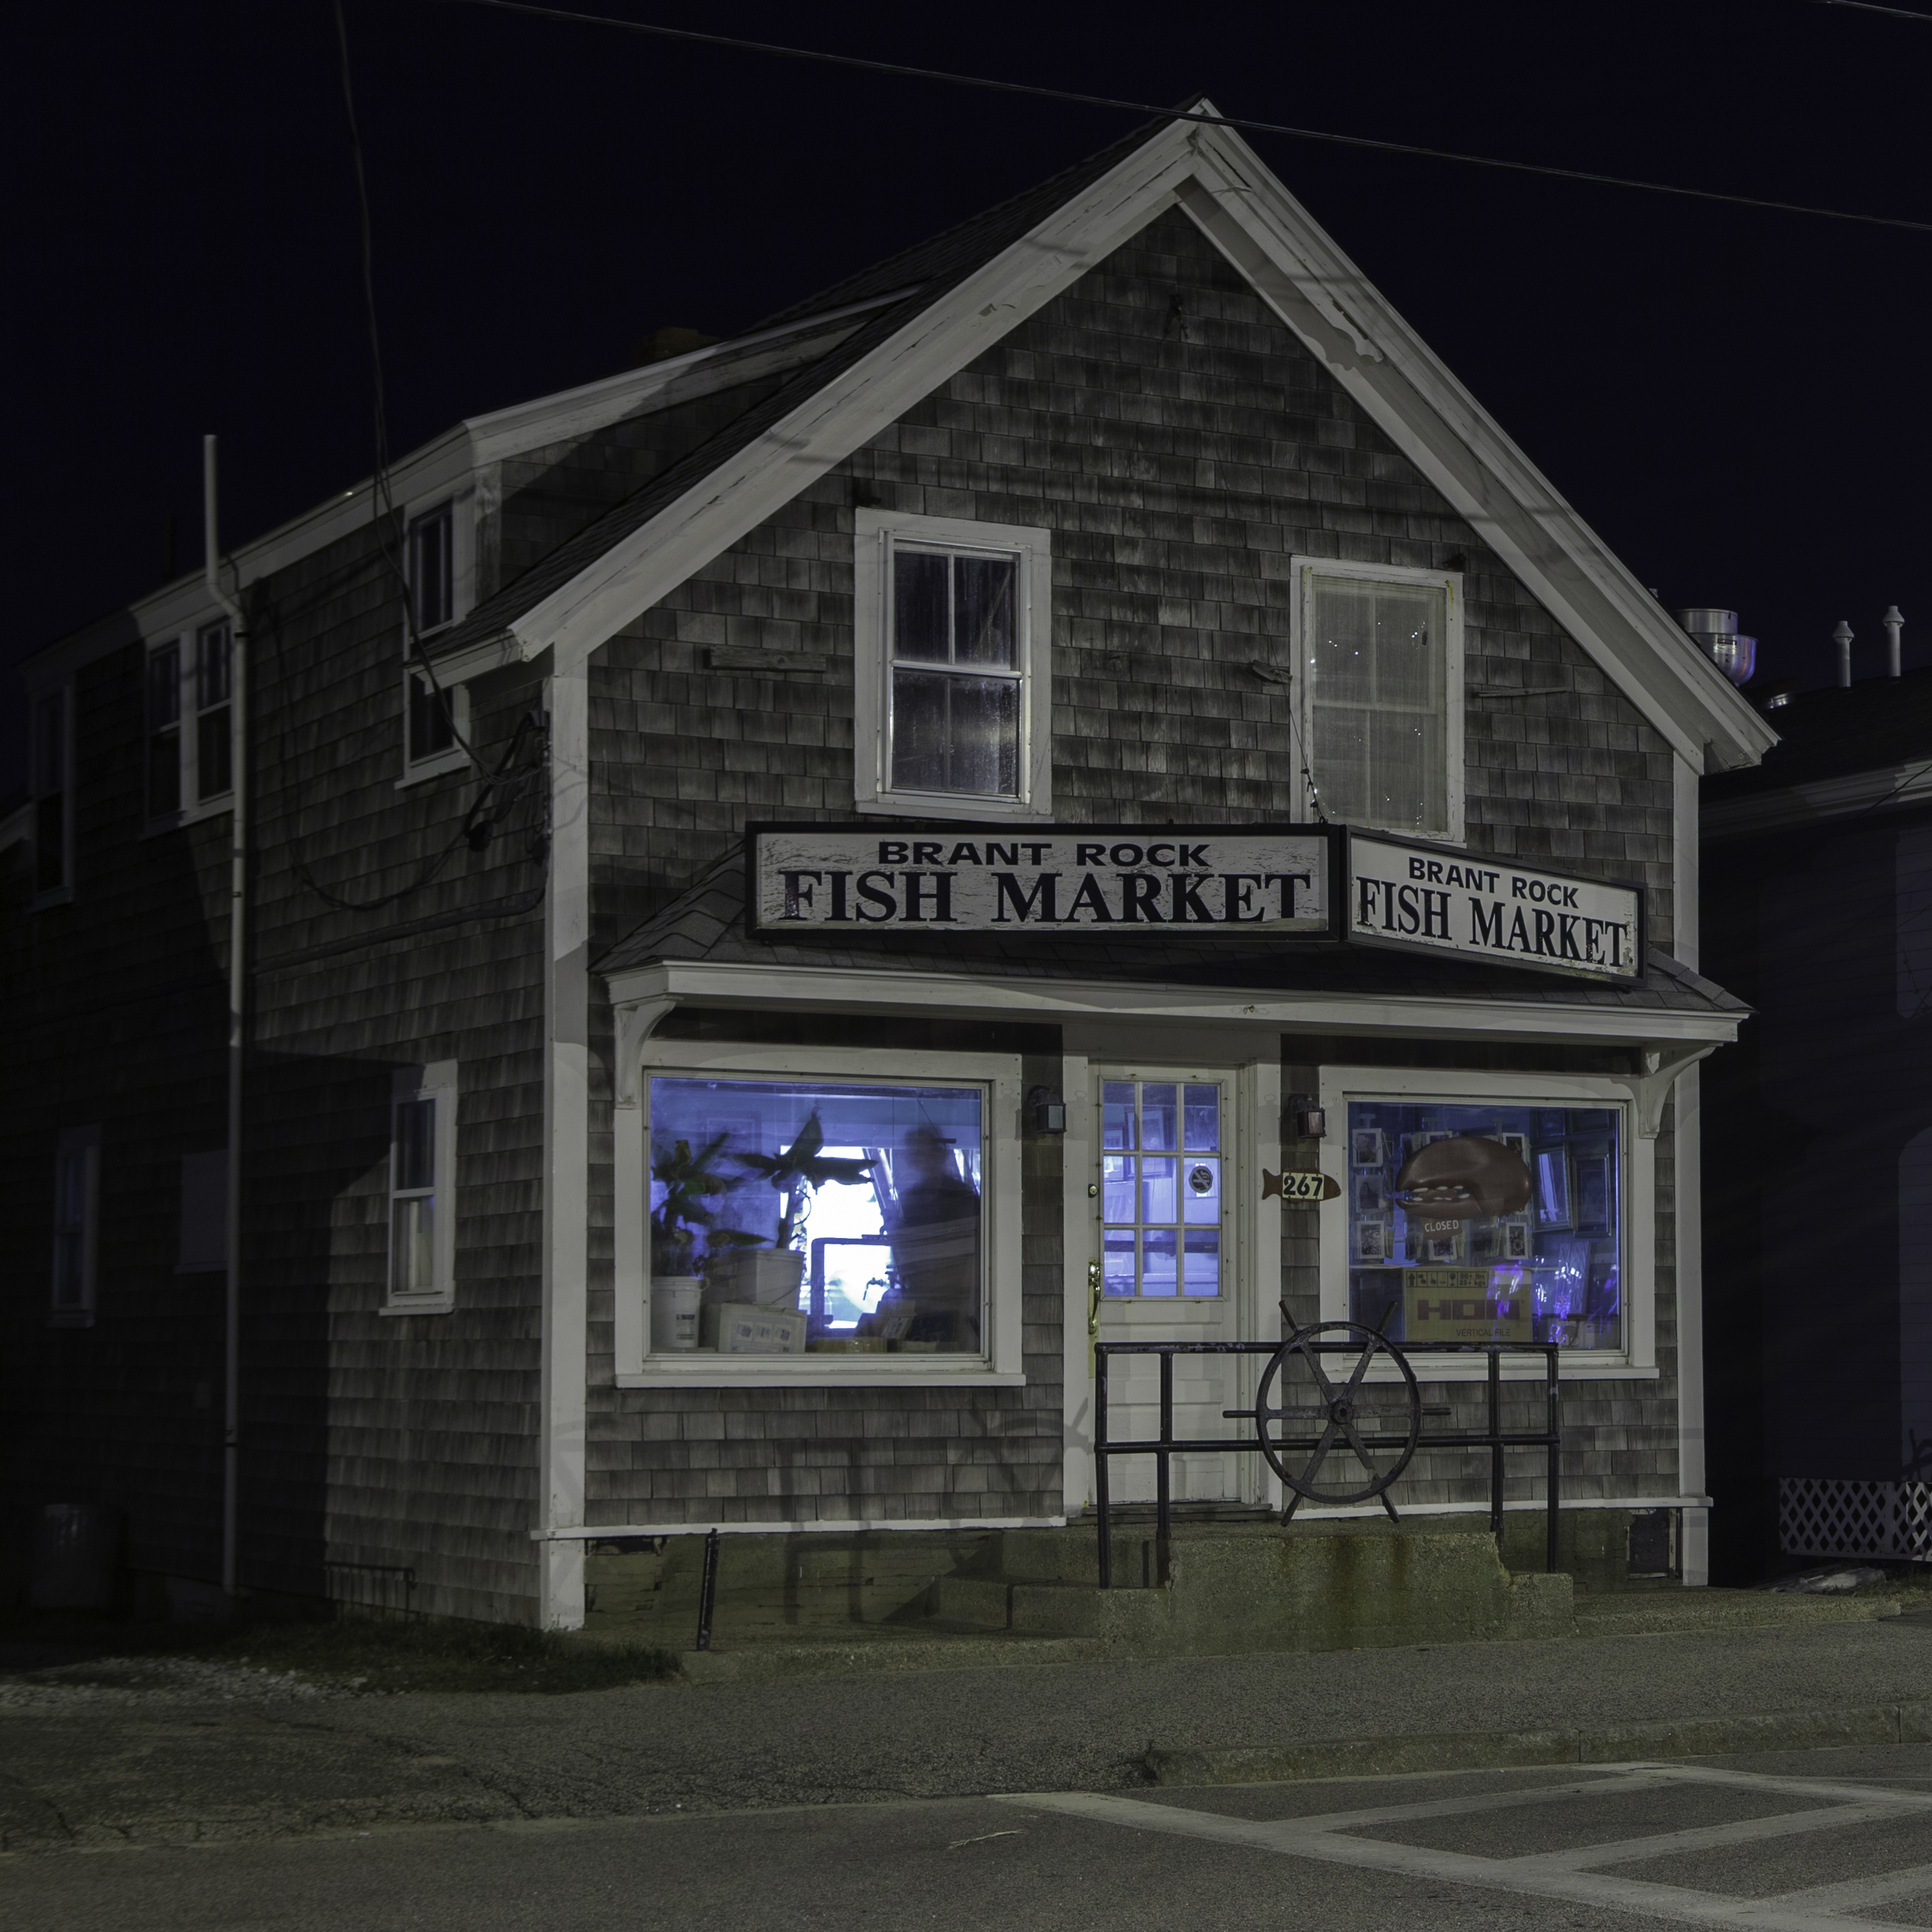 Brant Rock Fish Market